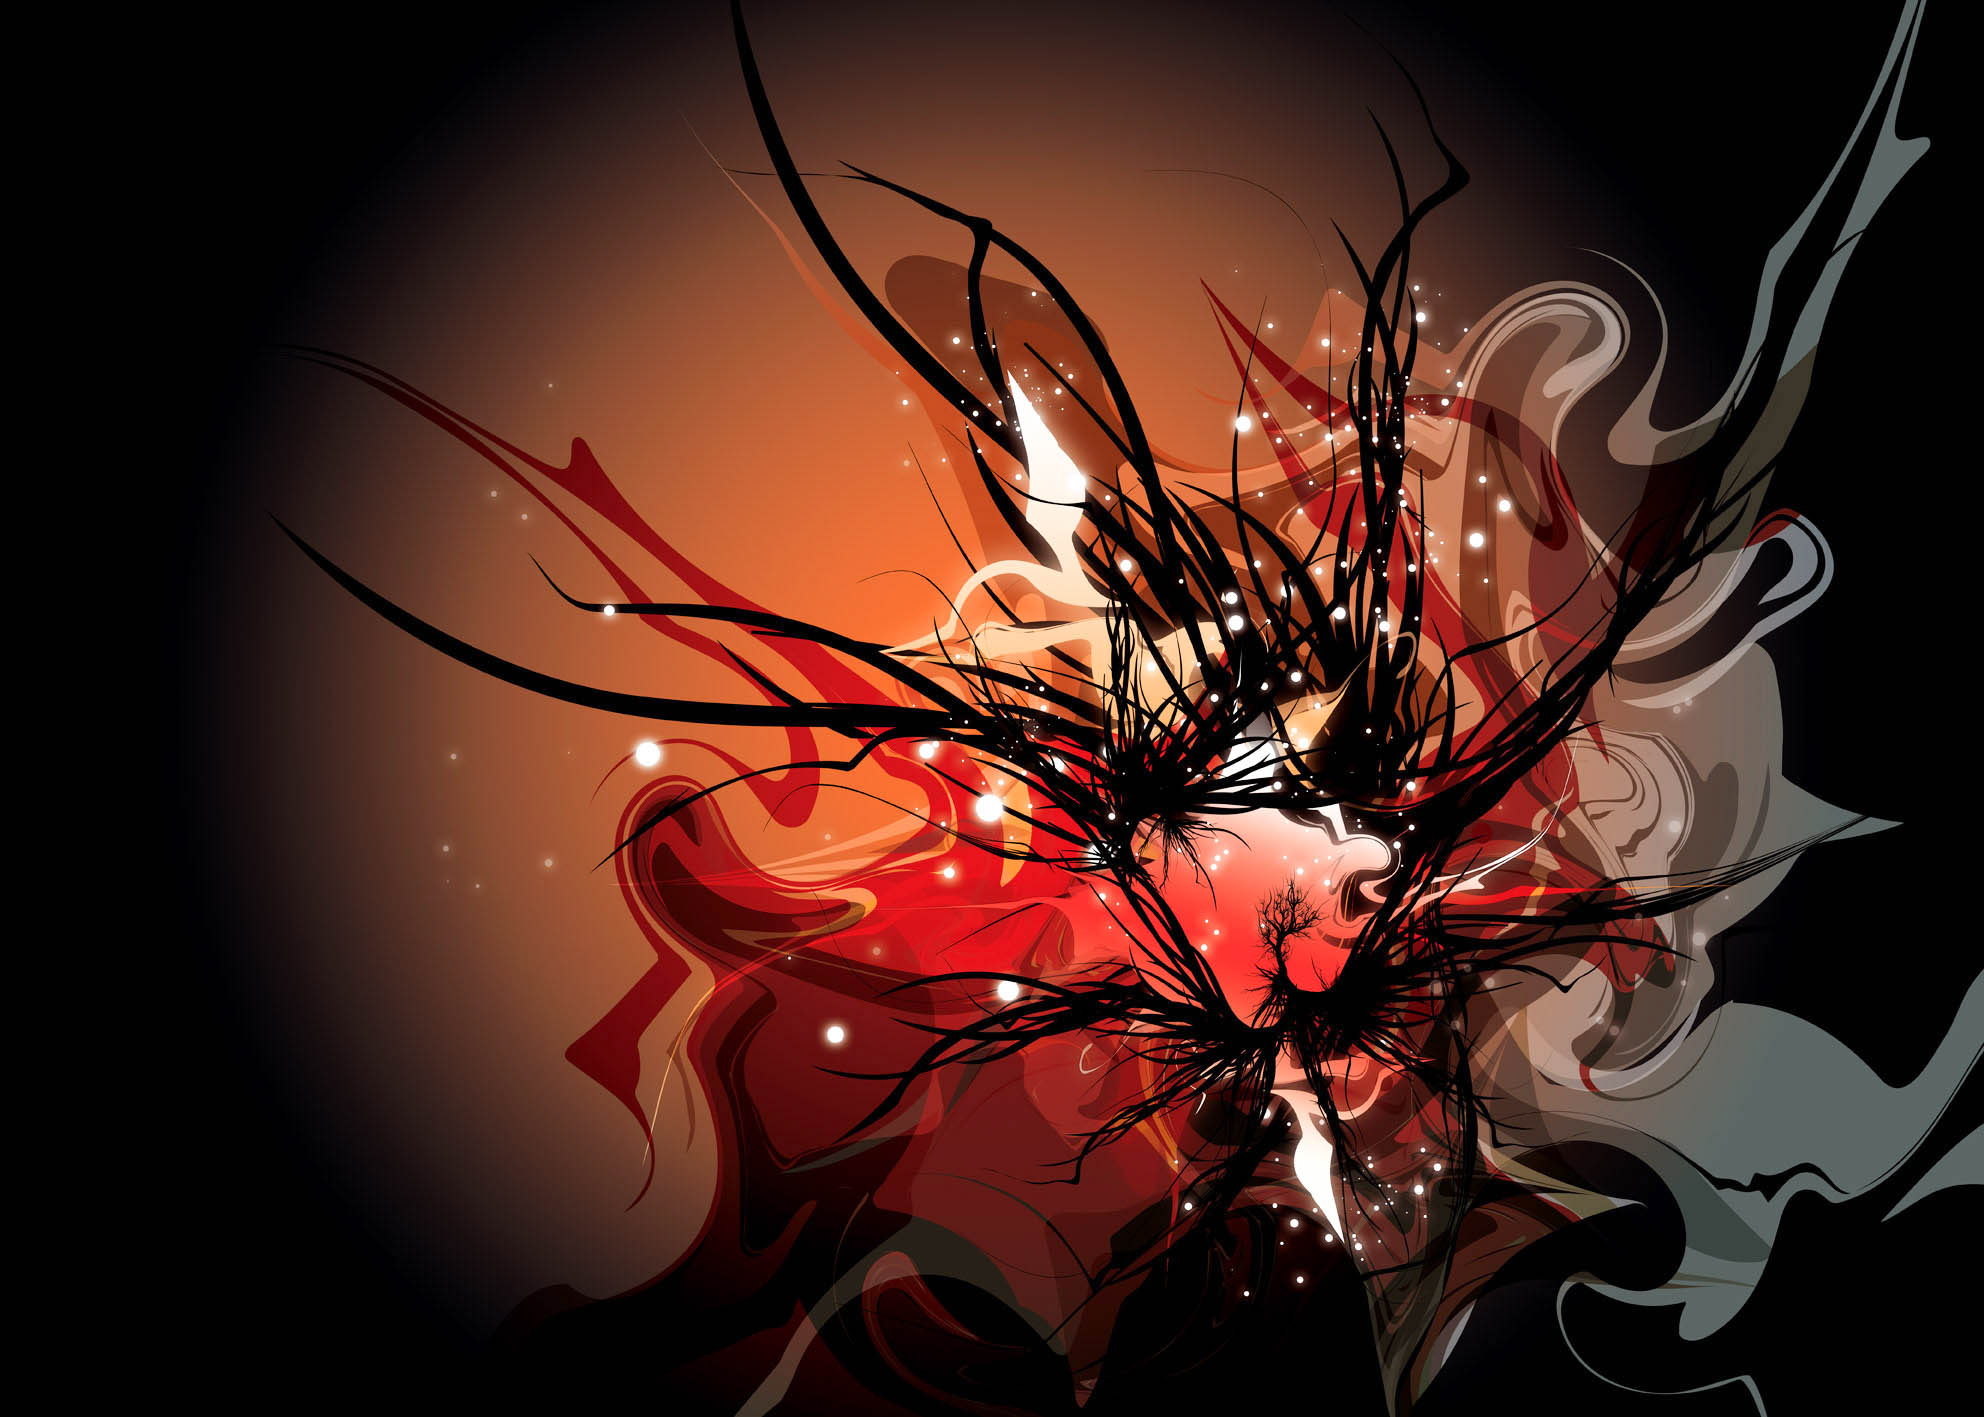 21+ Desktop Backgrounds Abstract Hd Wallpapers Wallpapers